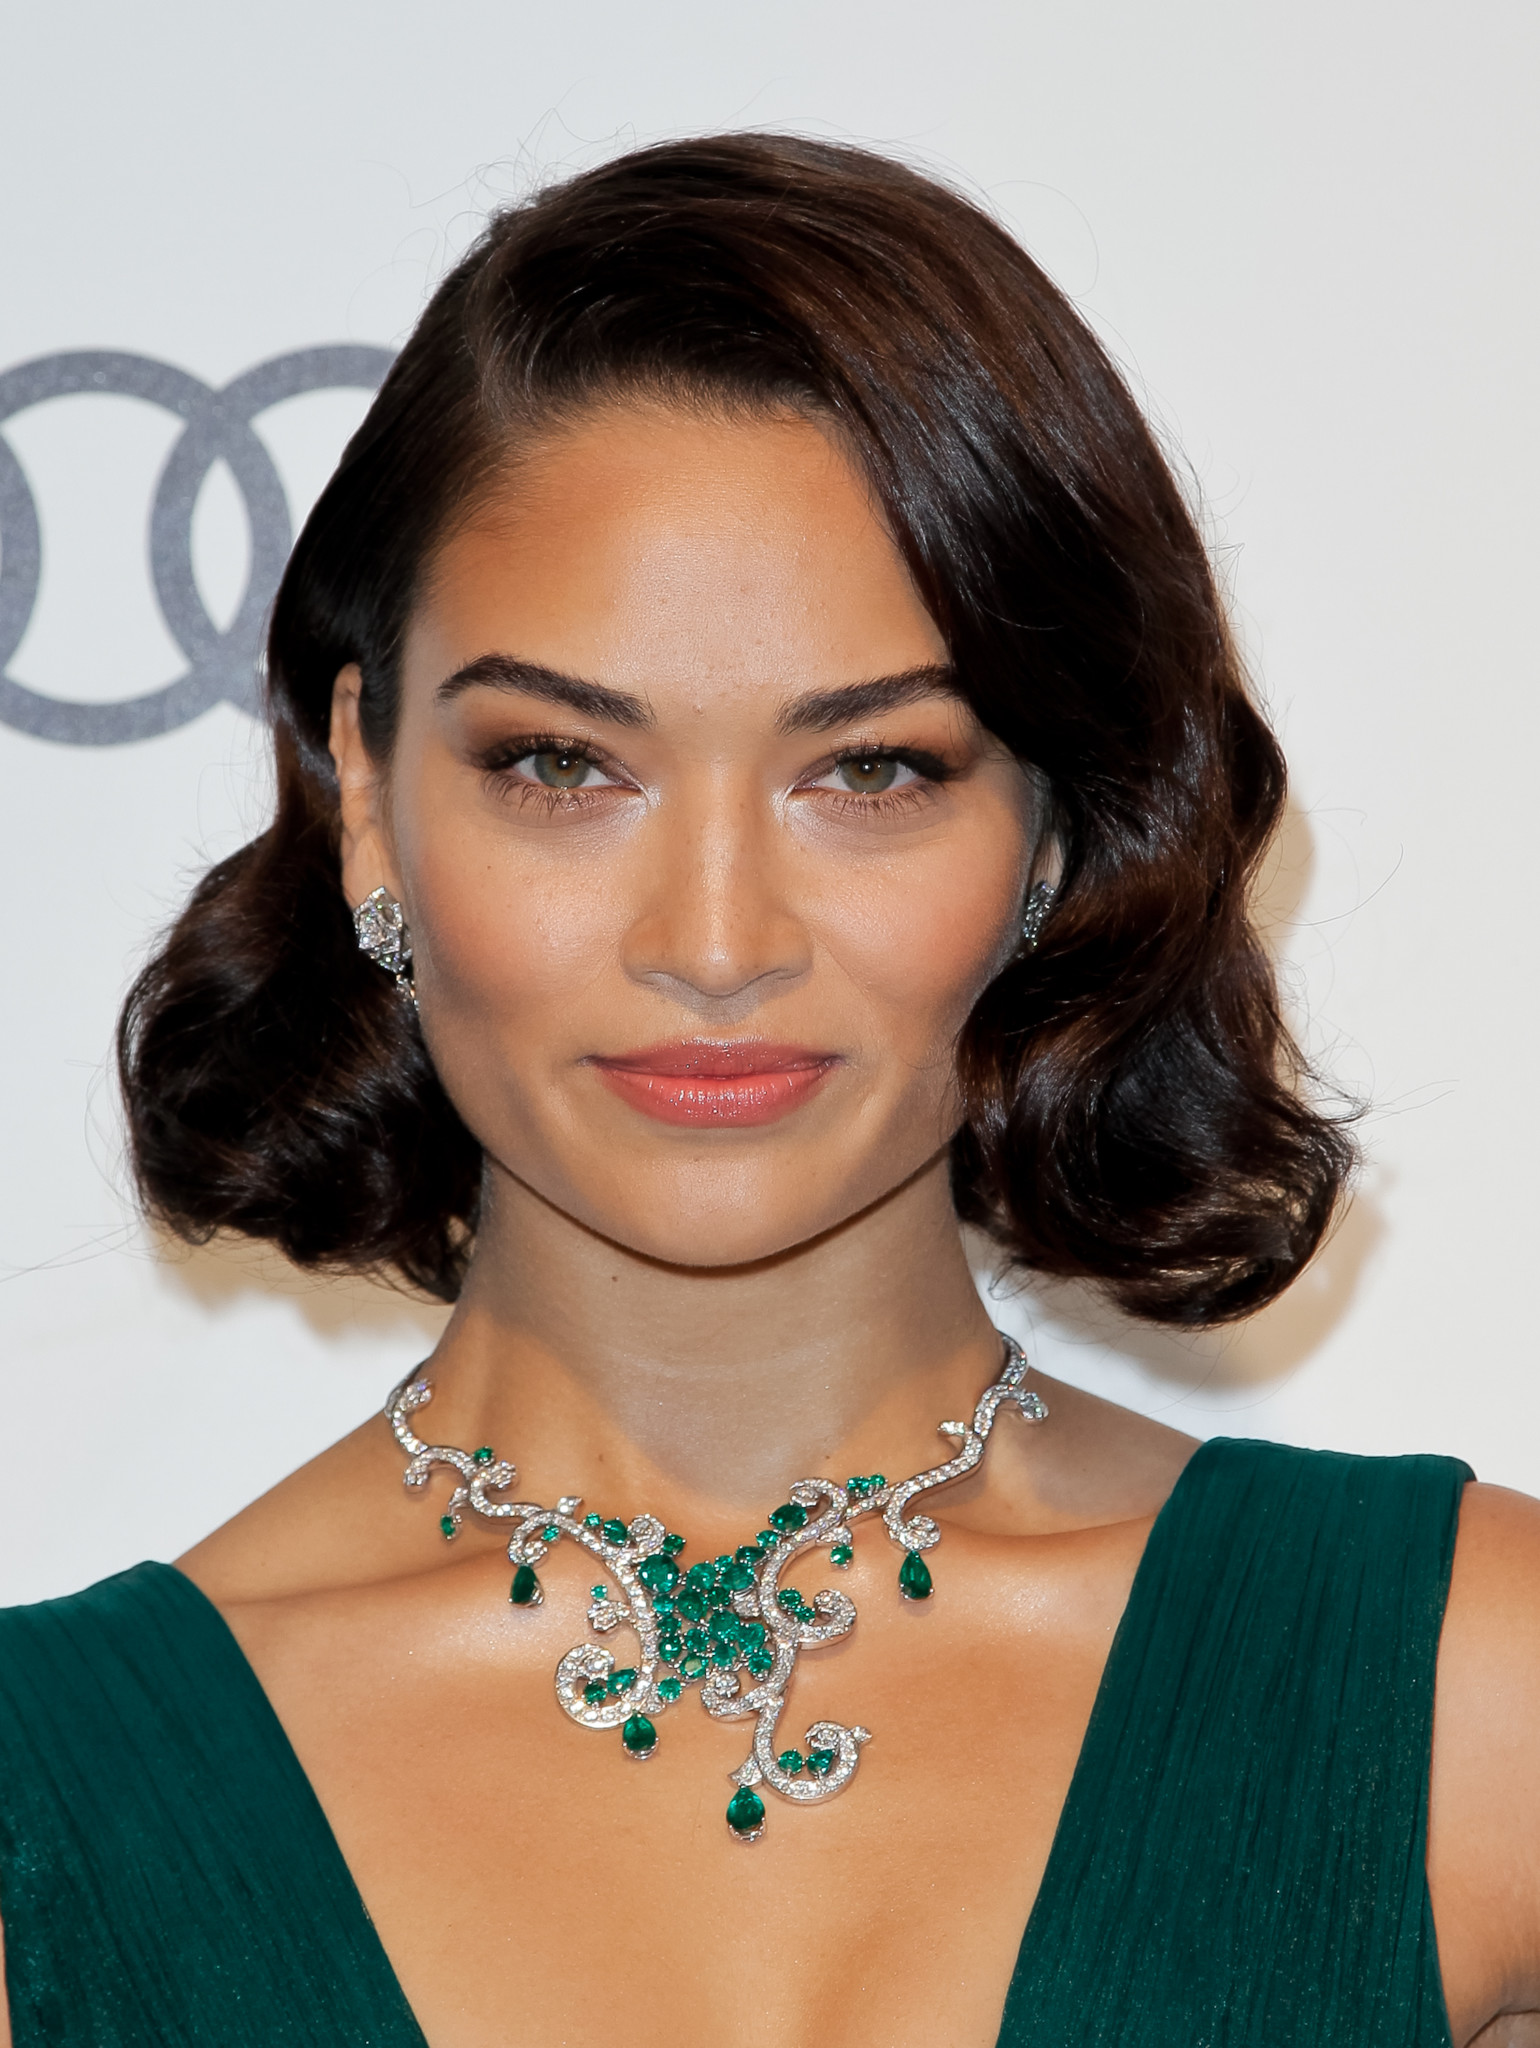 Australiam model Shanina Shaik poses upon her arrival for the 25th annual Elton John AIDS Foundation's Academy Awards Viewing Party on February 26, 2017 in West Hollywood, California. / AFP / TIBRINA HOBSON (Photo credit should read TIBRINA HOBSON/AFP/Getty Images)